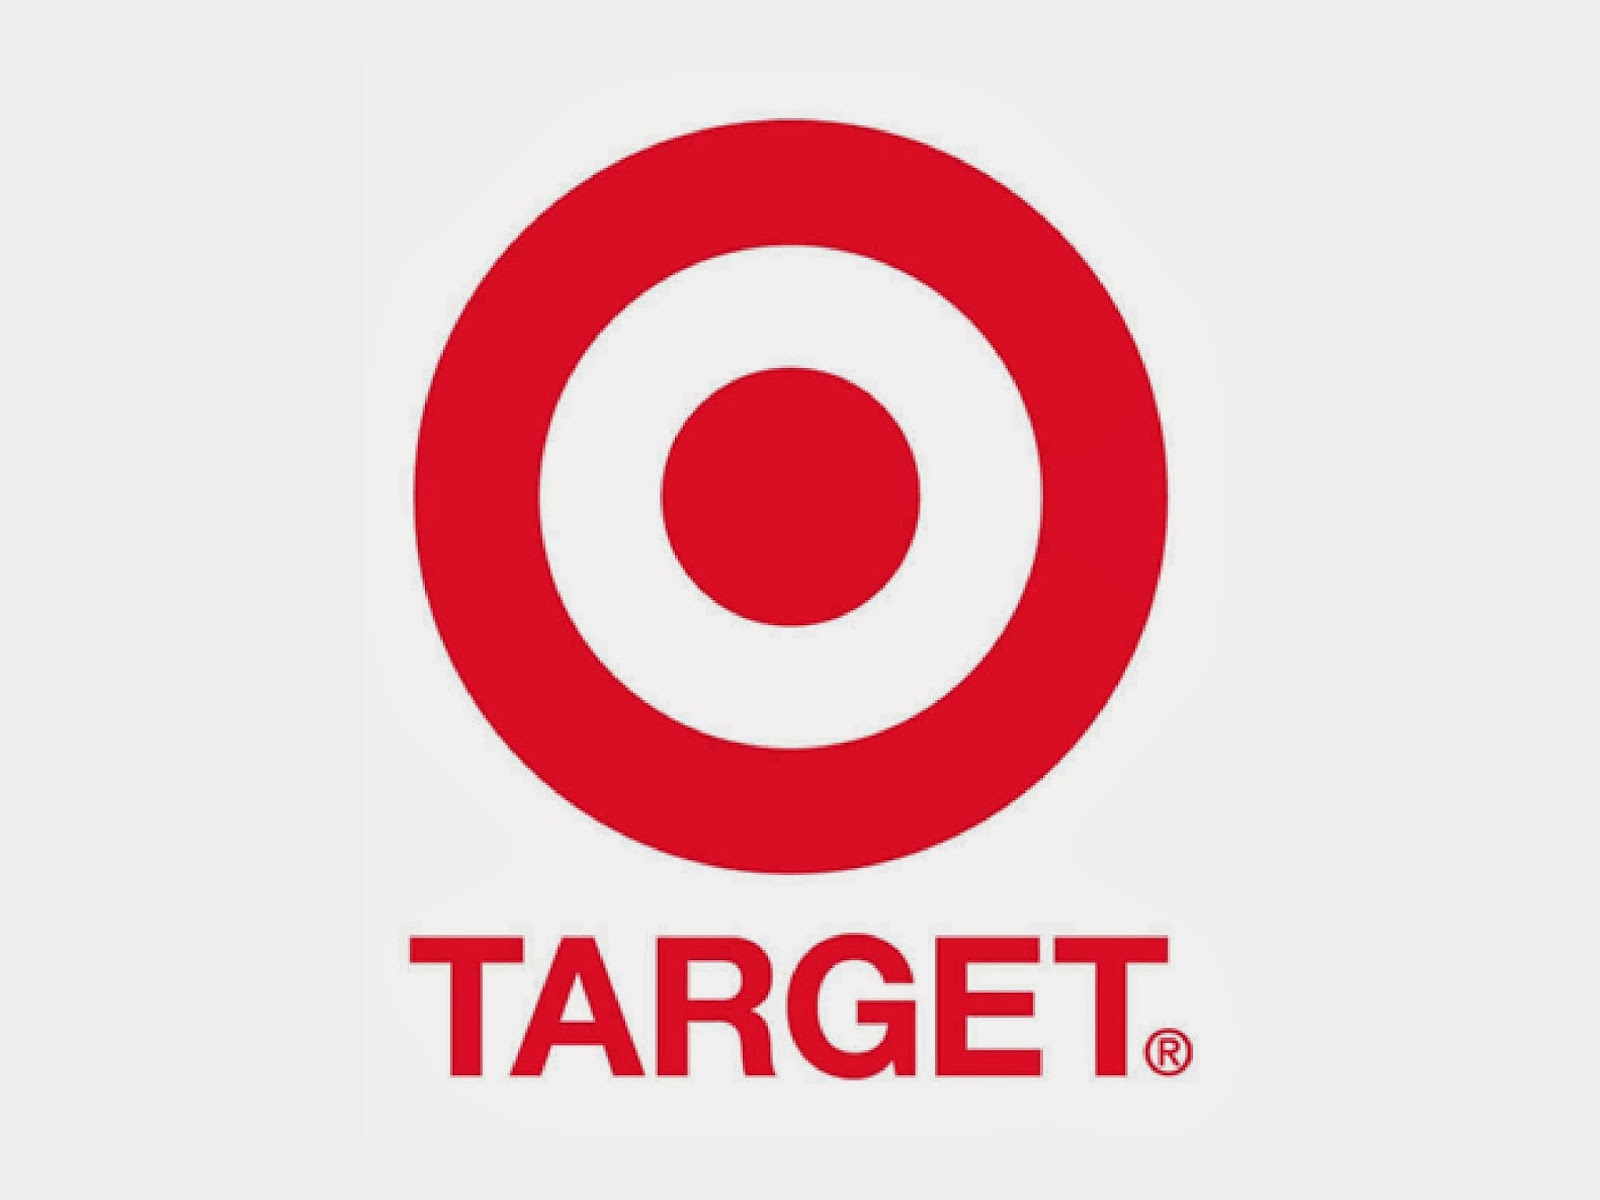 Live Better For Less Target Hacked Are You Safe